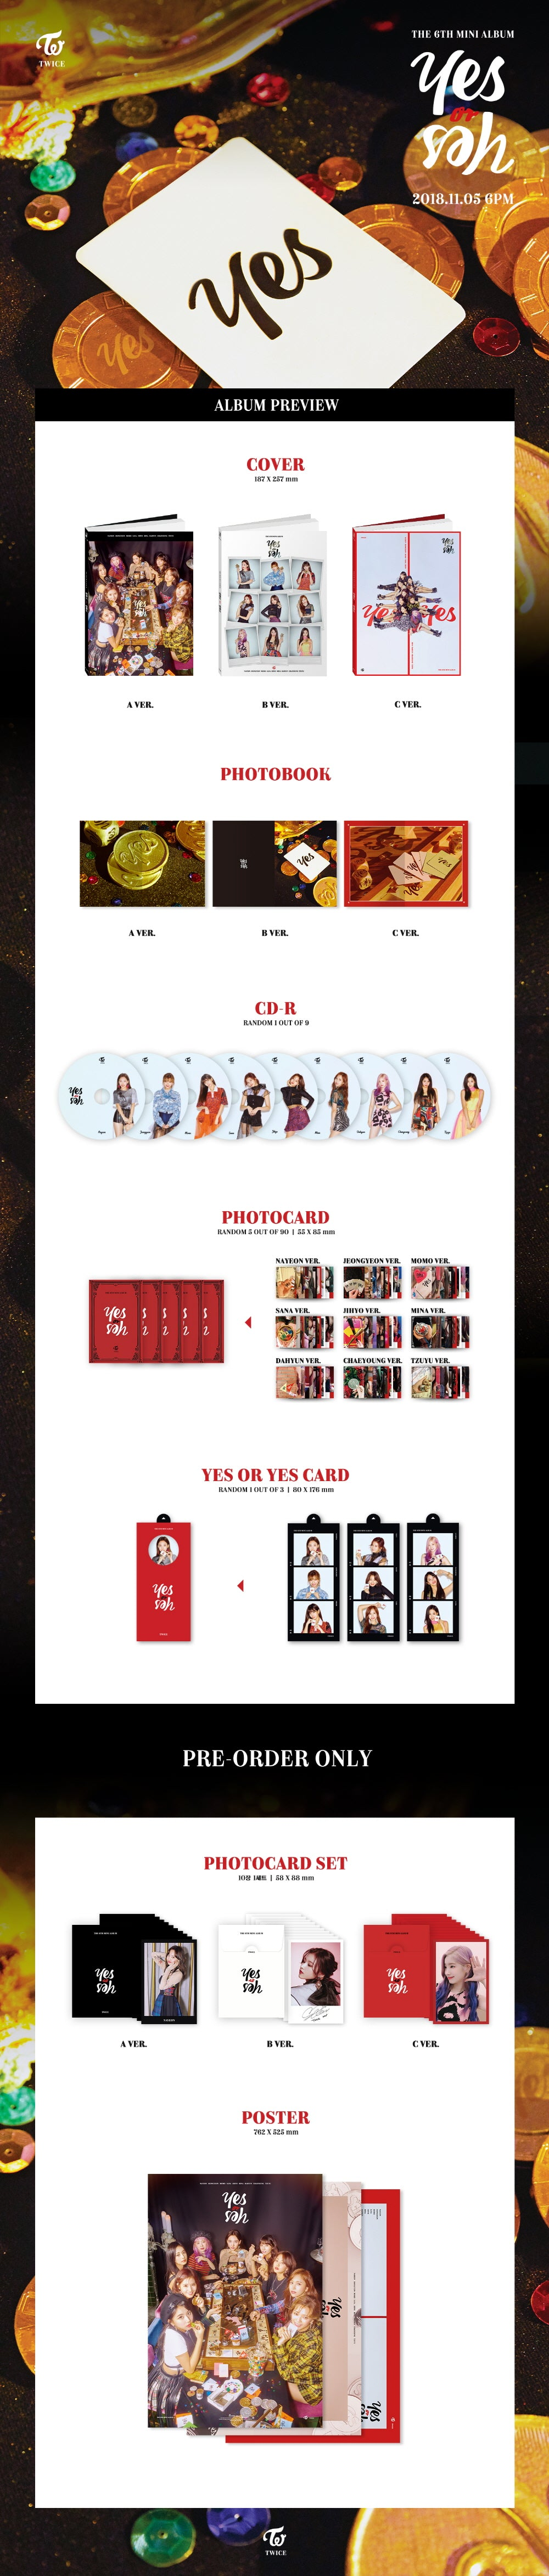 https://cdn.shopify.com/s/files/1/0102/3351/2032/files/twice_notice_20181031233541_20181101_0AM_TWICE_ALBUM_PREVIEW_Full.jpg?v=1561577612